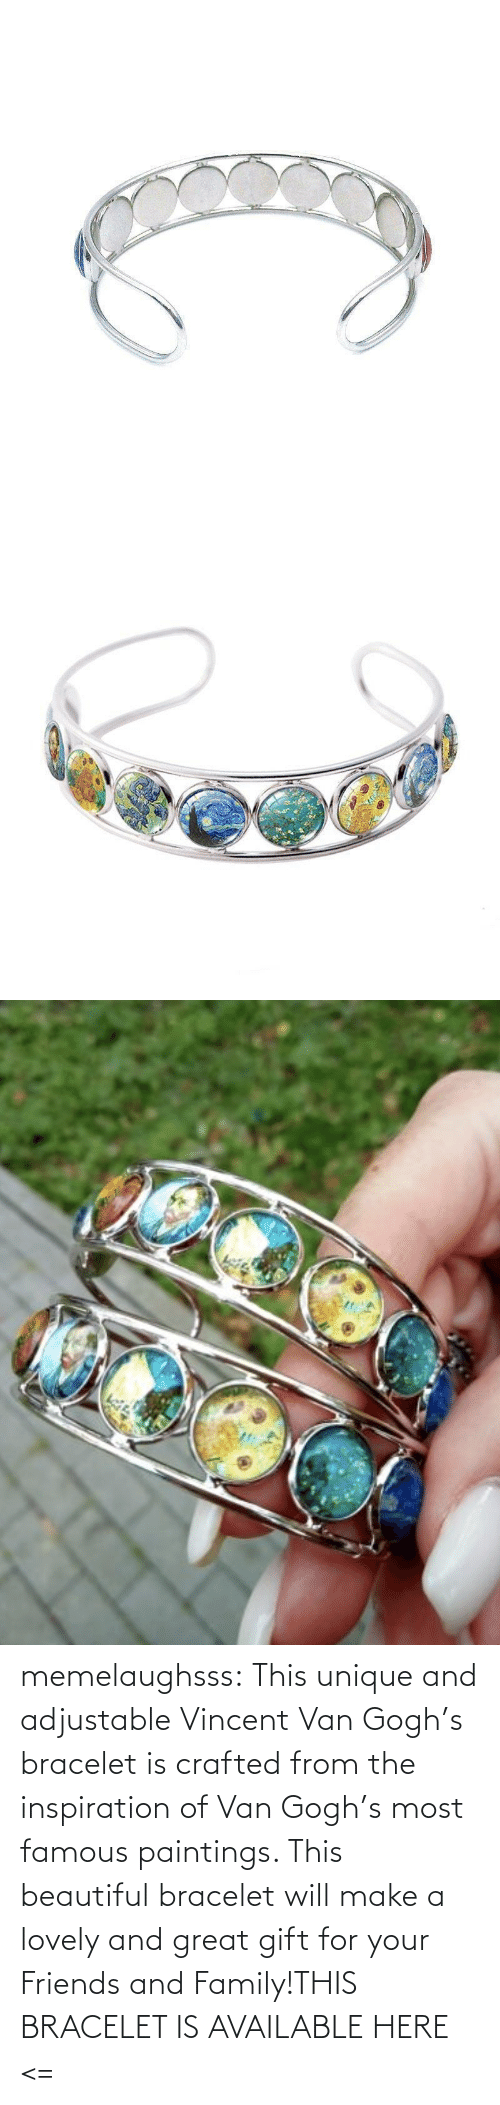 Vincent van Gogh: memelaughsss:  This unique and adjustable Vincent Van Gogh's bracelet is crafted from the inspiration of Van Gogh's most famous paintings. This beautiful bracelet will make a lovely and great gift for your Friends and Family!THIS BRACELET IS AVAILABLE HERE <=